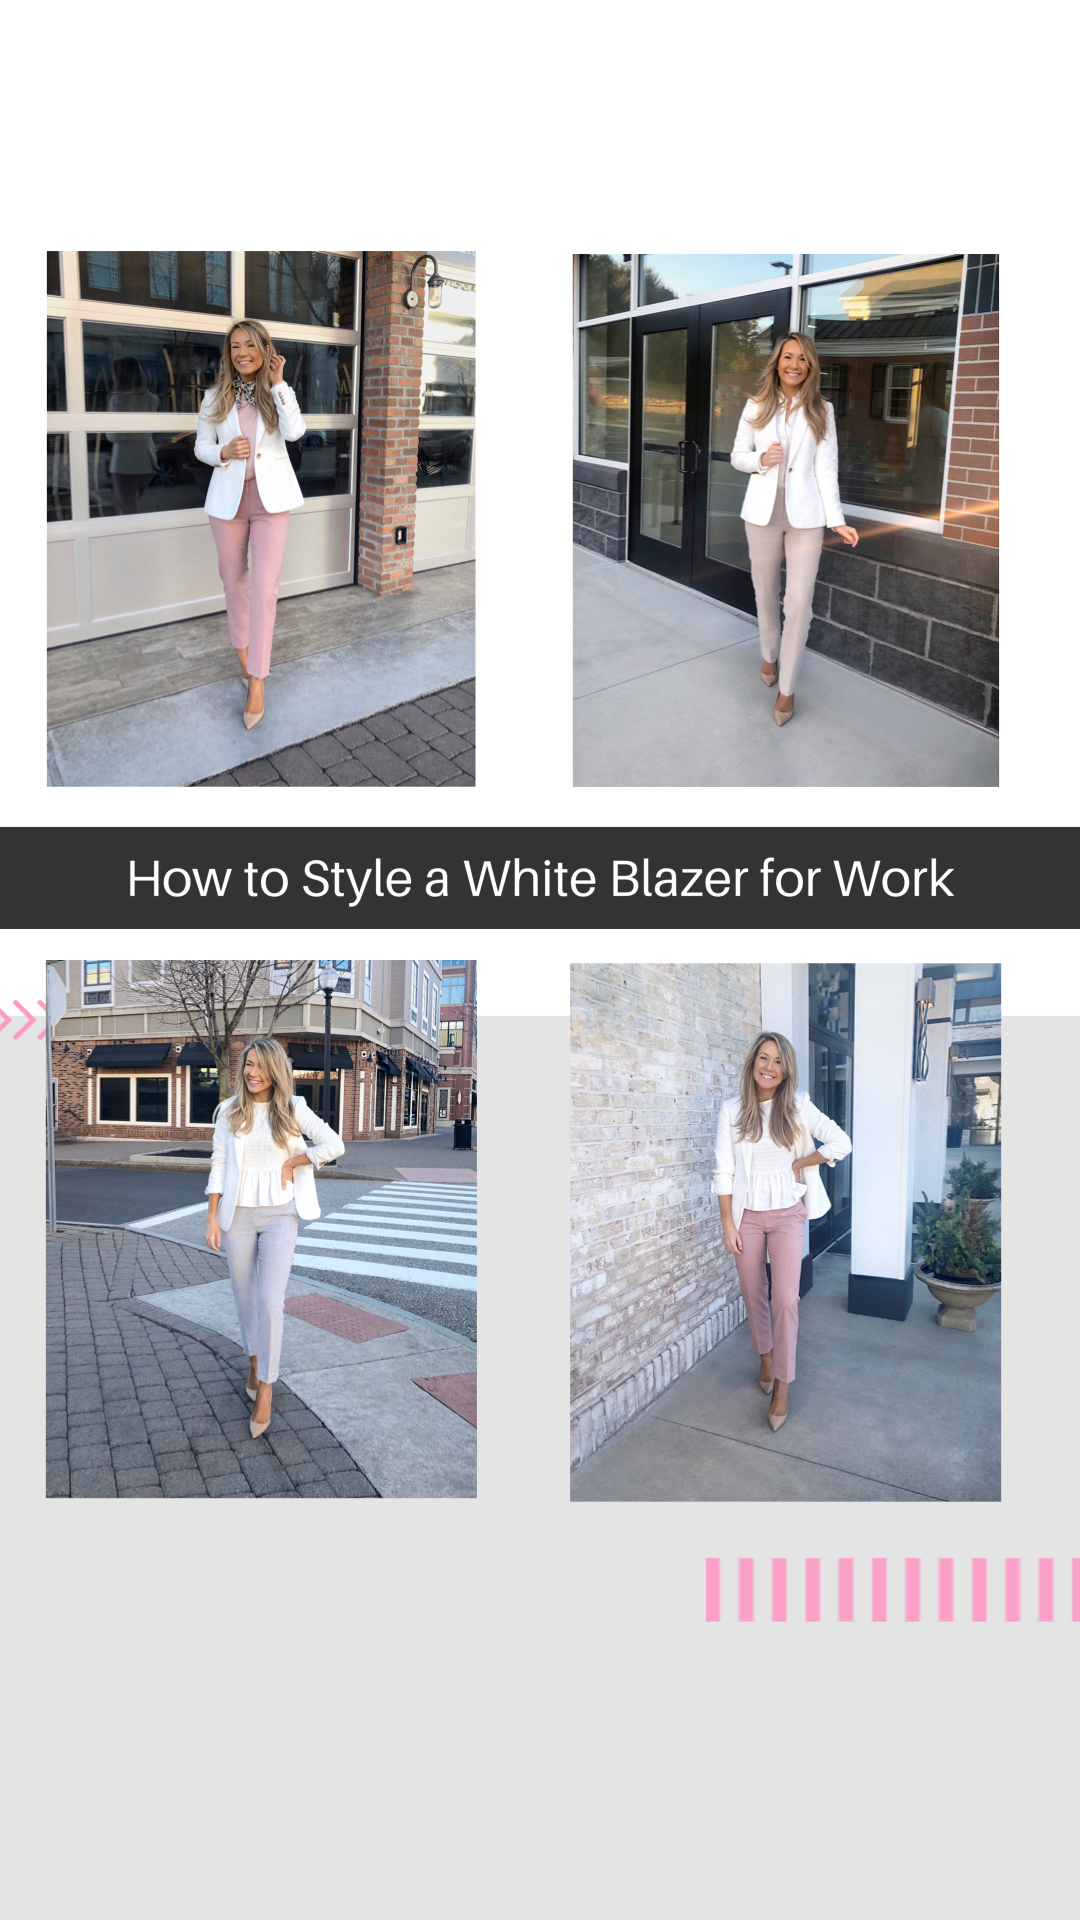 How to Style a White Blazer for Work